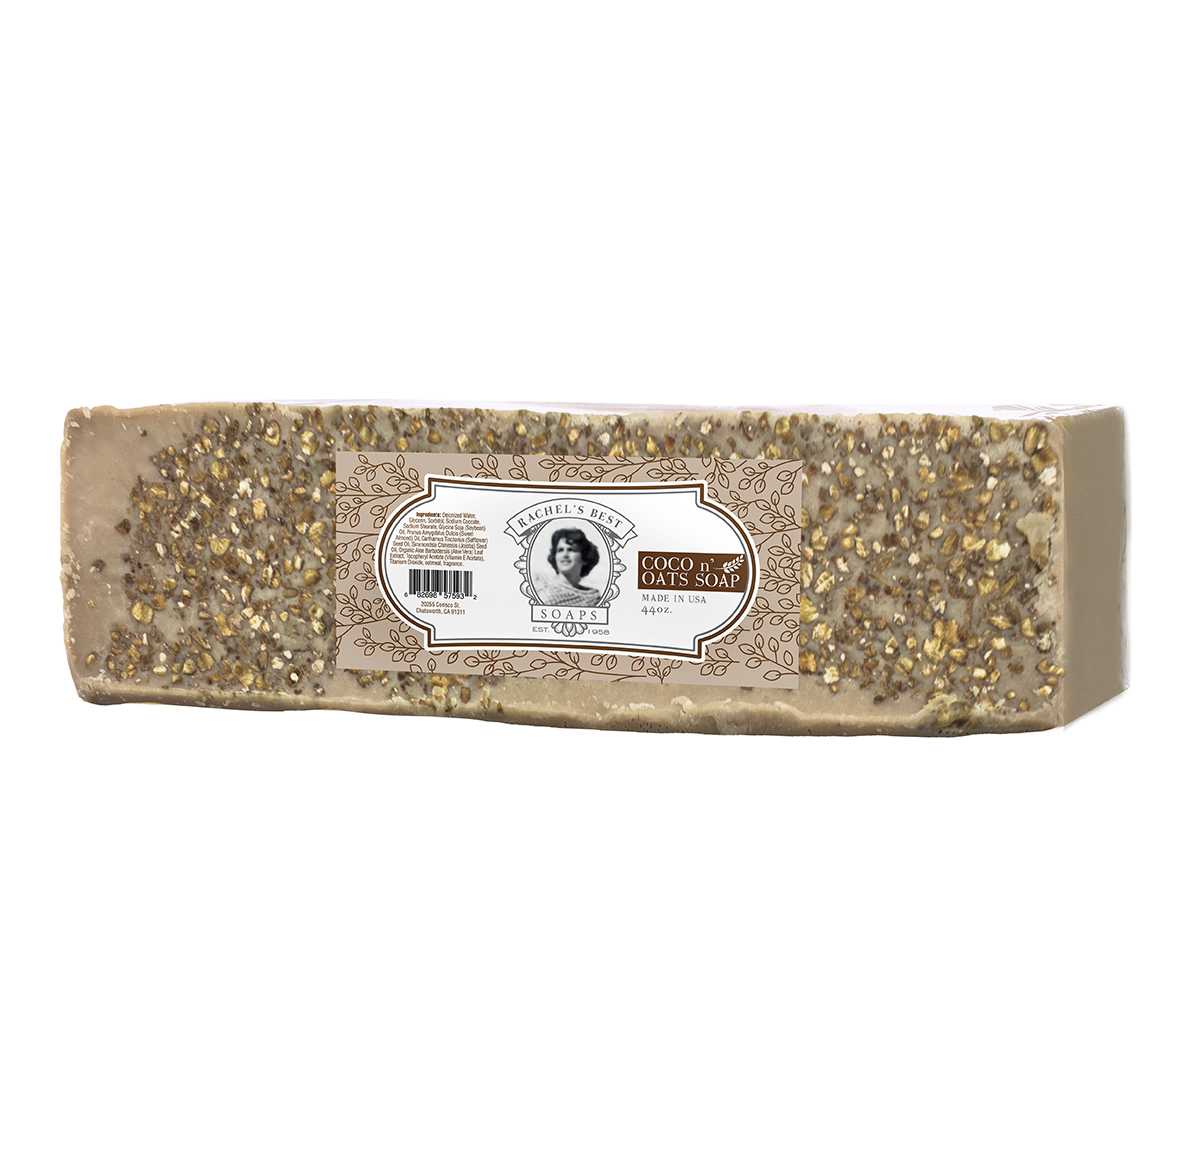 Coco n' Oats Soap